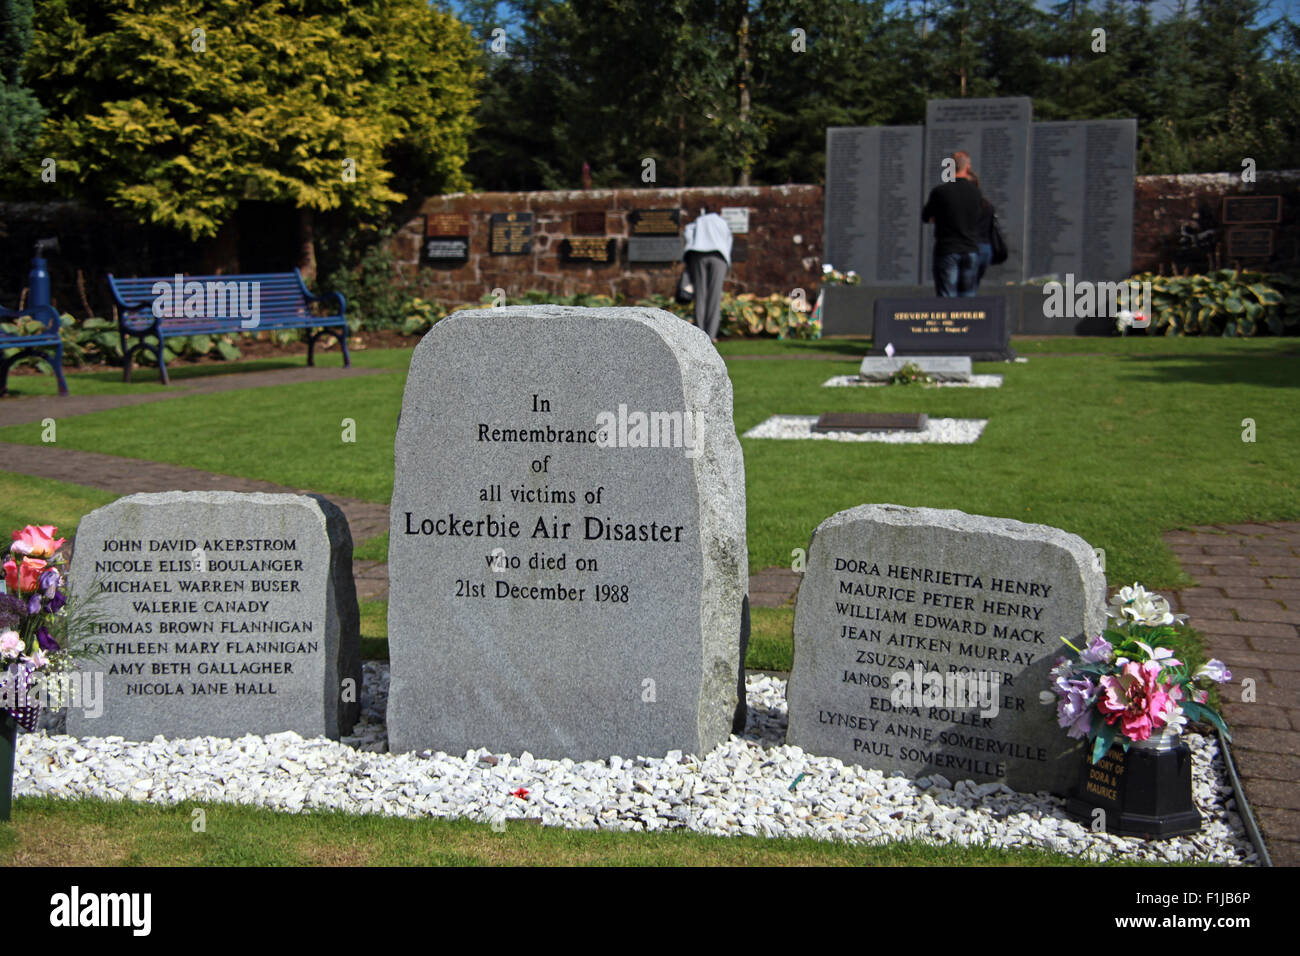 Visitors Remembering,Scotland,Lodge,Visitors,Centre,DLVC,Trust,Lockerbie,Memorial,Scotland,Victims,Pan,Am,PanAm,flight,103,bomb,bombing,terrorist,December,1988,attack,crash,dead,site,21/12/1988,270,victims,Scottish,Town,conspiracy,blast,Tundergarth,Room,garden,of,Dryfesdale,Cemetery,new,New York,GoTonySmith,Lodge,Visitors,Centre,DLVC,Trust,Lockerbie,Memorial,Scotland,Victims,Pan,Am,PanAm,flight,103,bomb,bombing,terrorist,December,1988,attack,crash,dead,site,21/12/1988,270,victims,Scottish,Town,conspiracy,blast,Tundergarth,Room,garden,of,Dryfesdale,Cemetery,news,Cultural,understanding,remembering,innocent,transatlantic,Frankfurt,Detroit,Libyan,Libya,Colonel Muammar Gaddafi,civil,case,compensation,terrorism,PA103,30,30years,years,Syracuse,University,SU,family,collections,Story,Archive,Archives,40,35,Timeline,saga,disaster,air,Scholars,program,programs,remembrance,Clipper Maid of the Seas,N739PA,Boeing,727,plane,aircraft,Scotland,UK,United Kingdom,GB,Great Britain,resting,place,Buy Pictures of,Buy Images Of,New York,al megrahi,30 Years